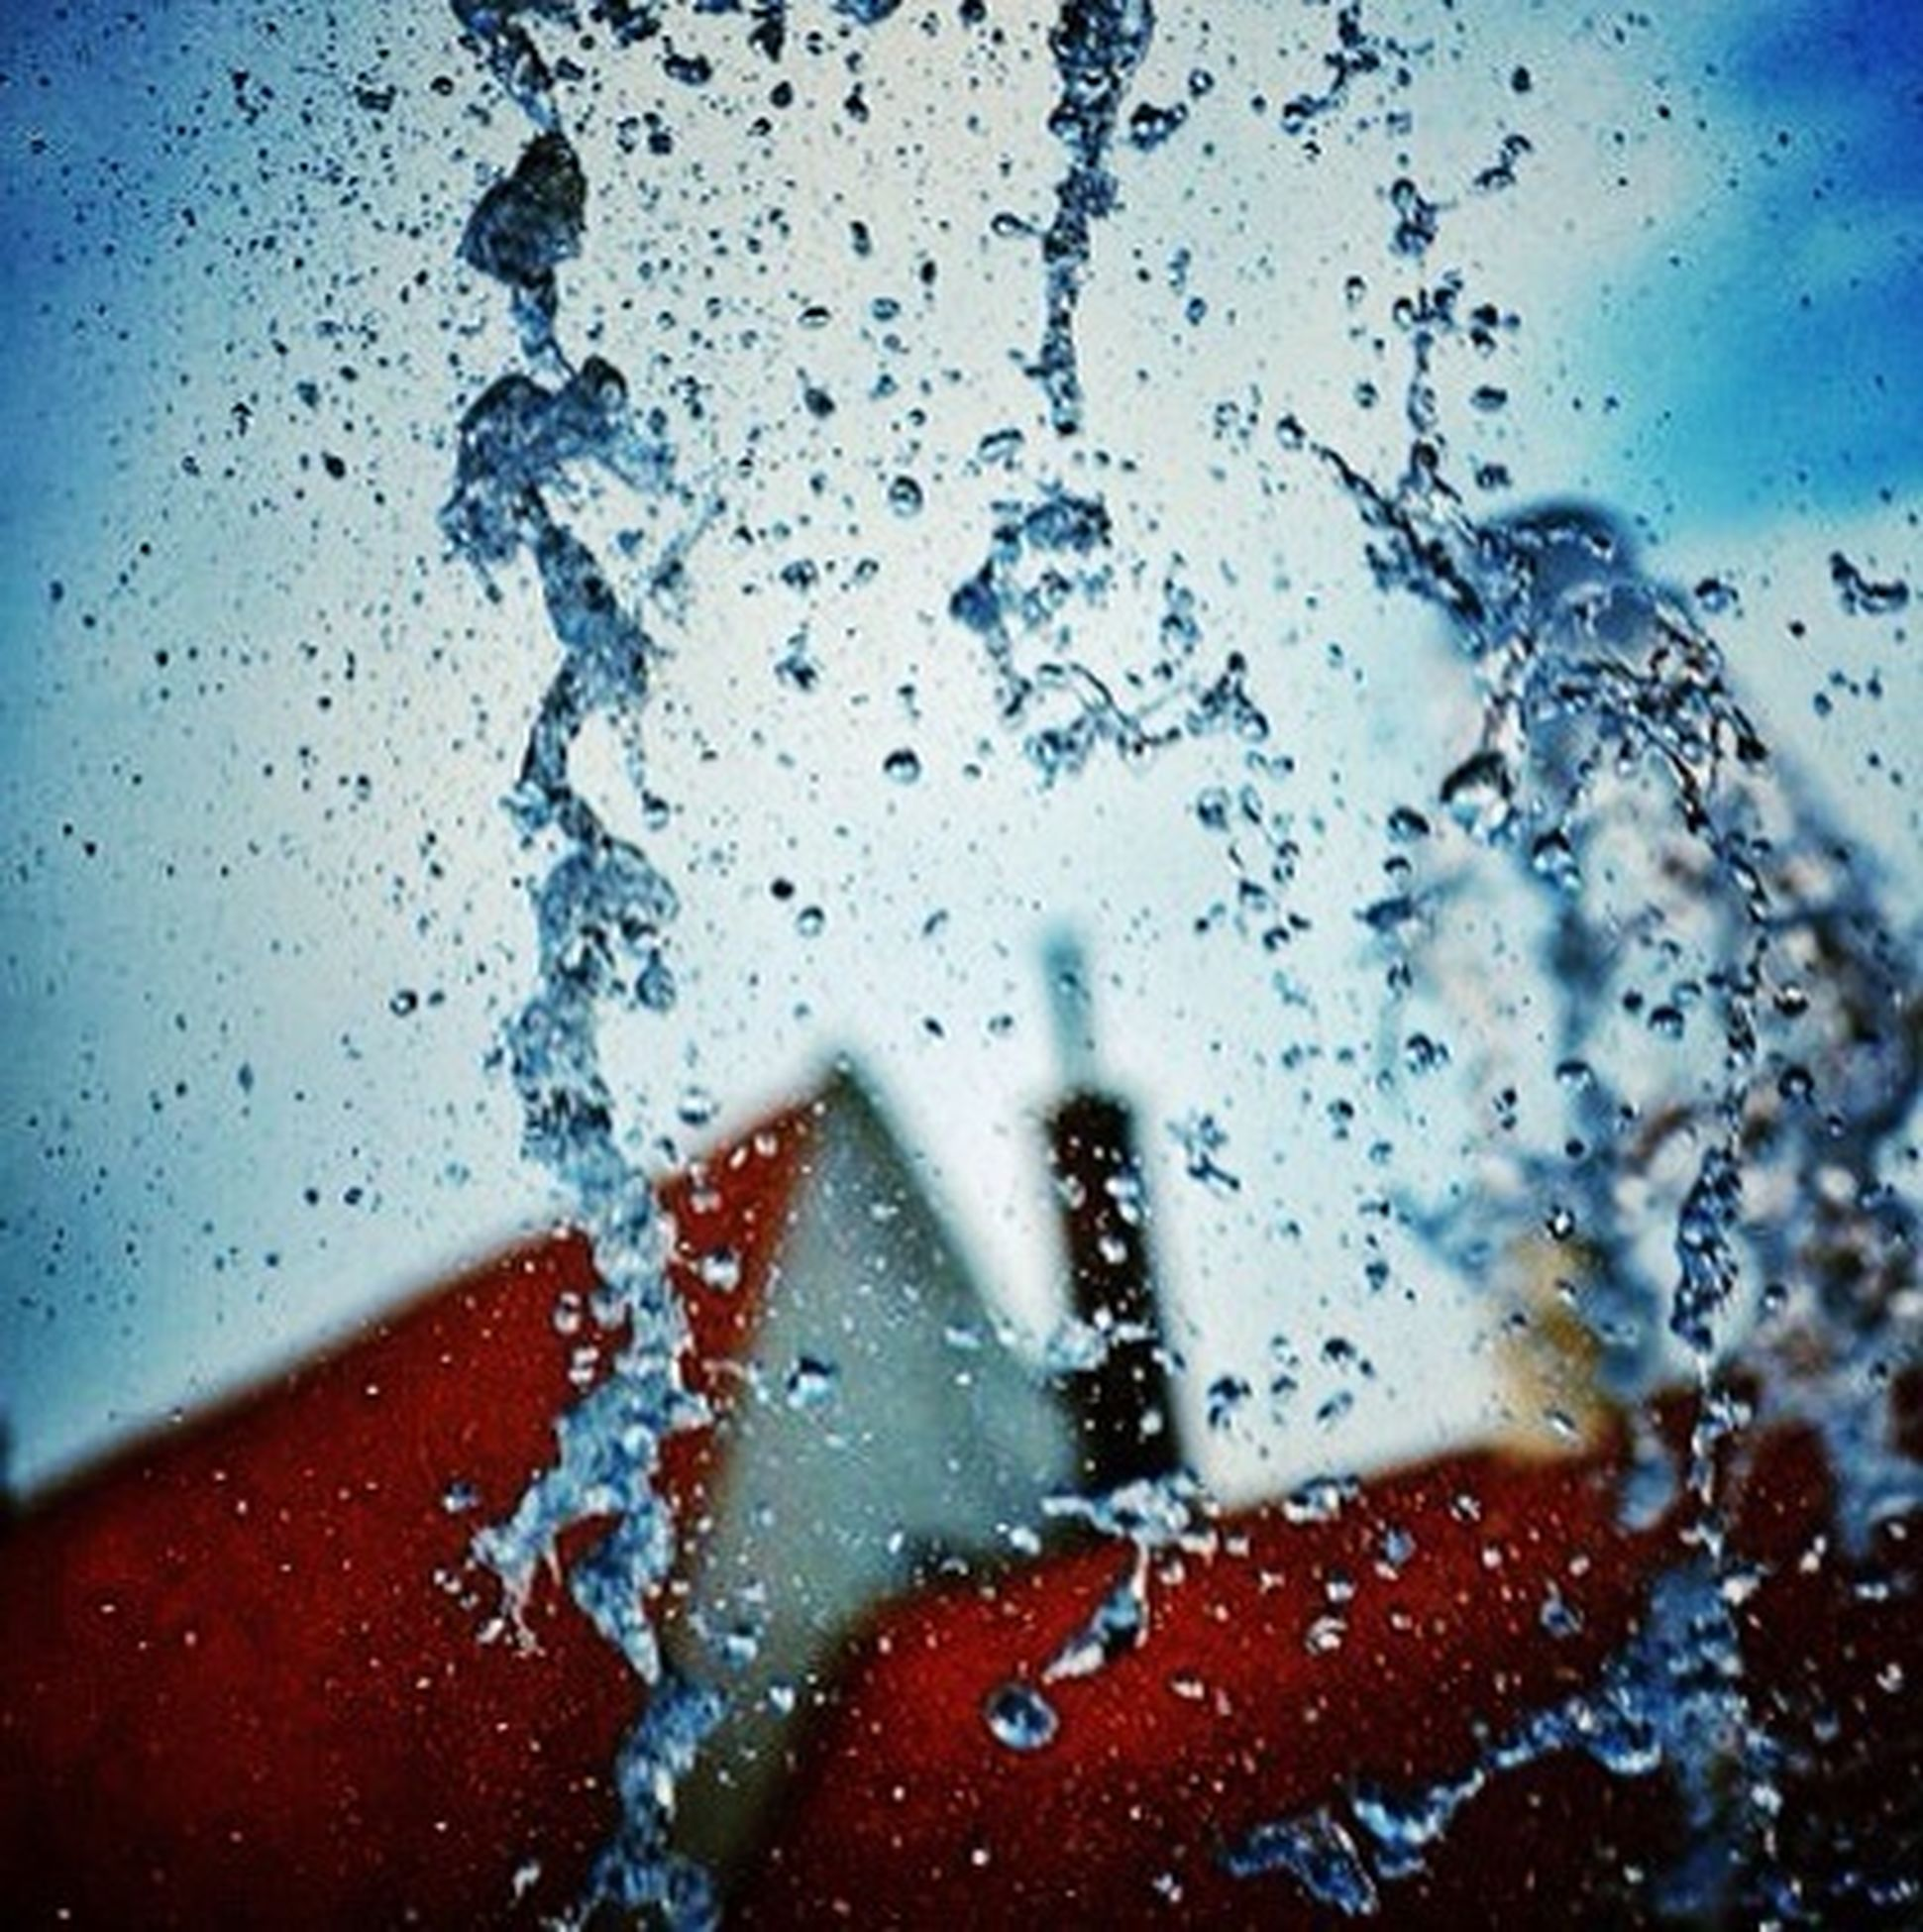 wet, drop, rain, water, window, season, weather, raindrop, indoors, glass - material, transparent, full frame, backgrounds, sky, close-up, monsoon, built structure, glass, architecture, transportation